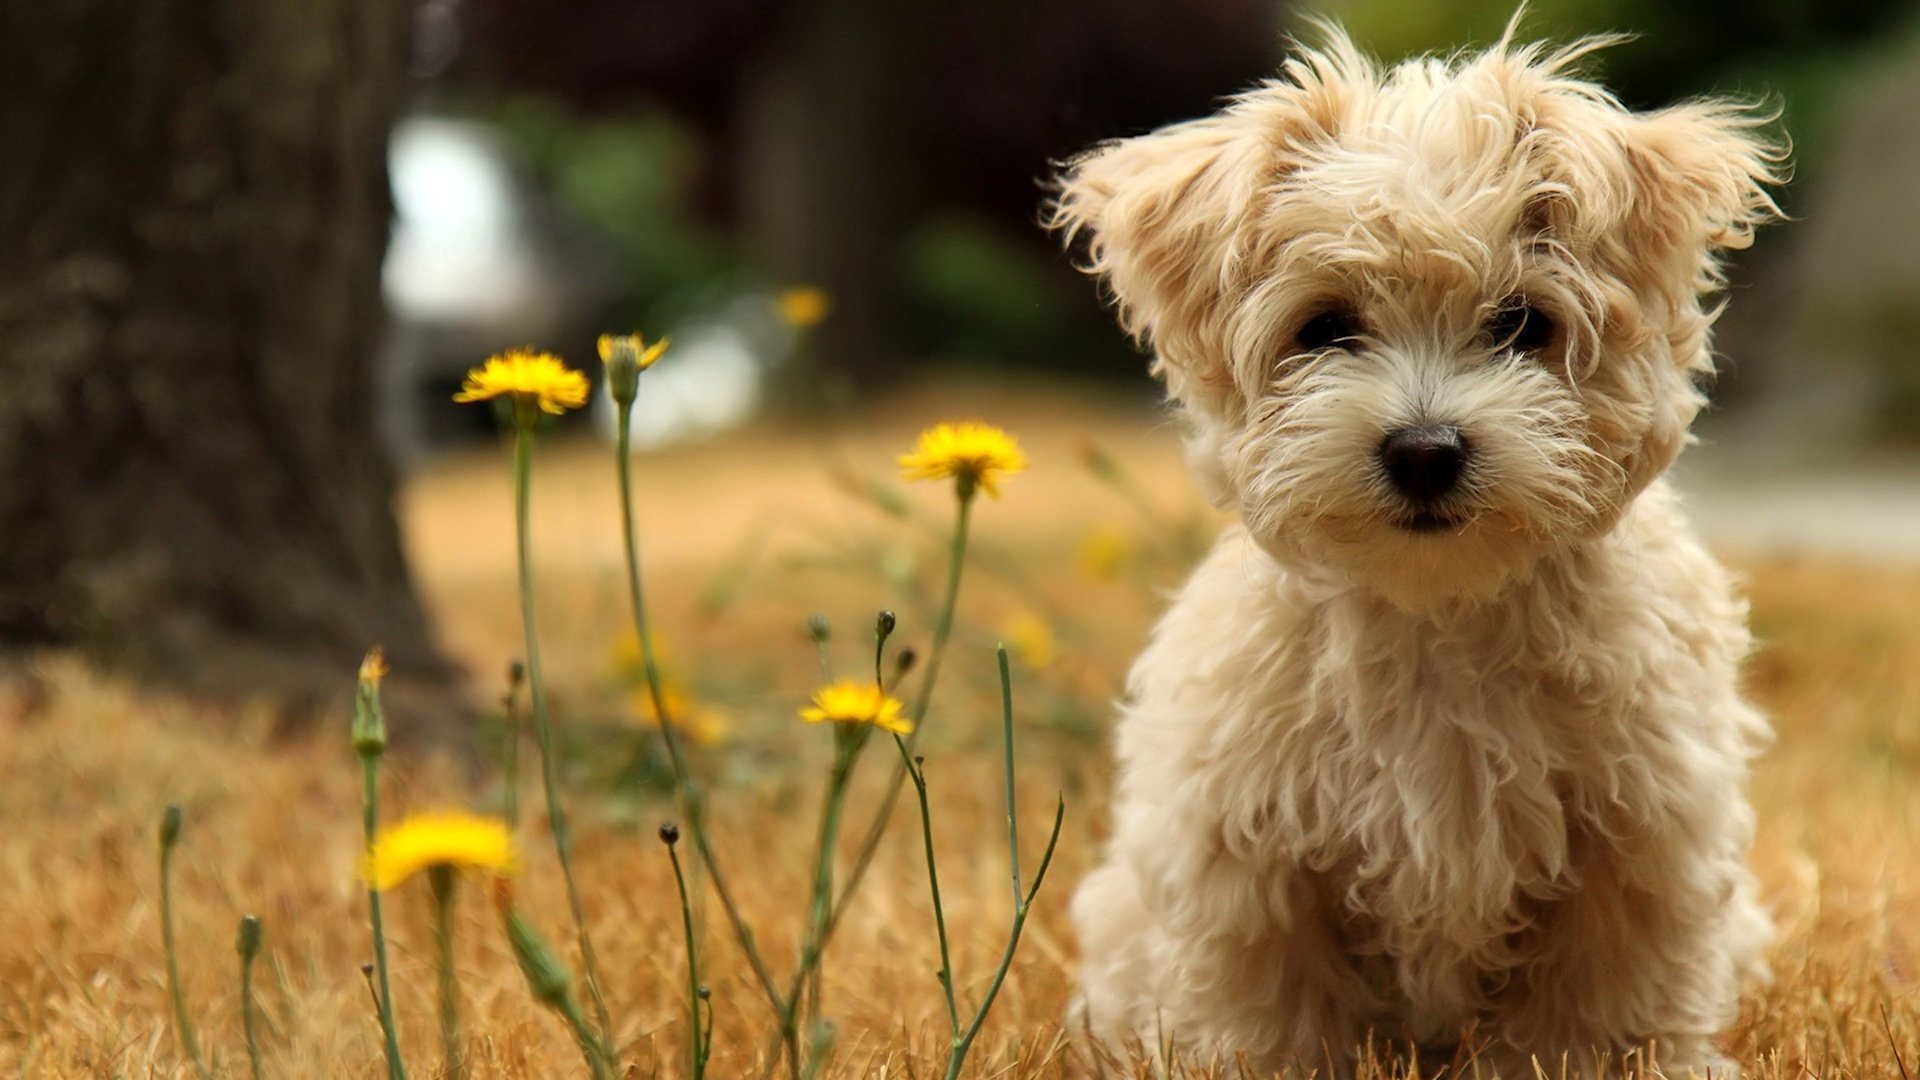 HD Dog Wallpapers For Desktop